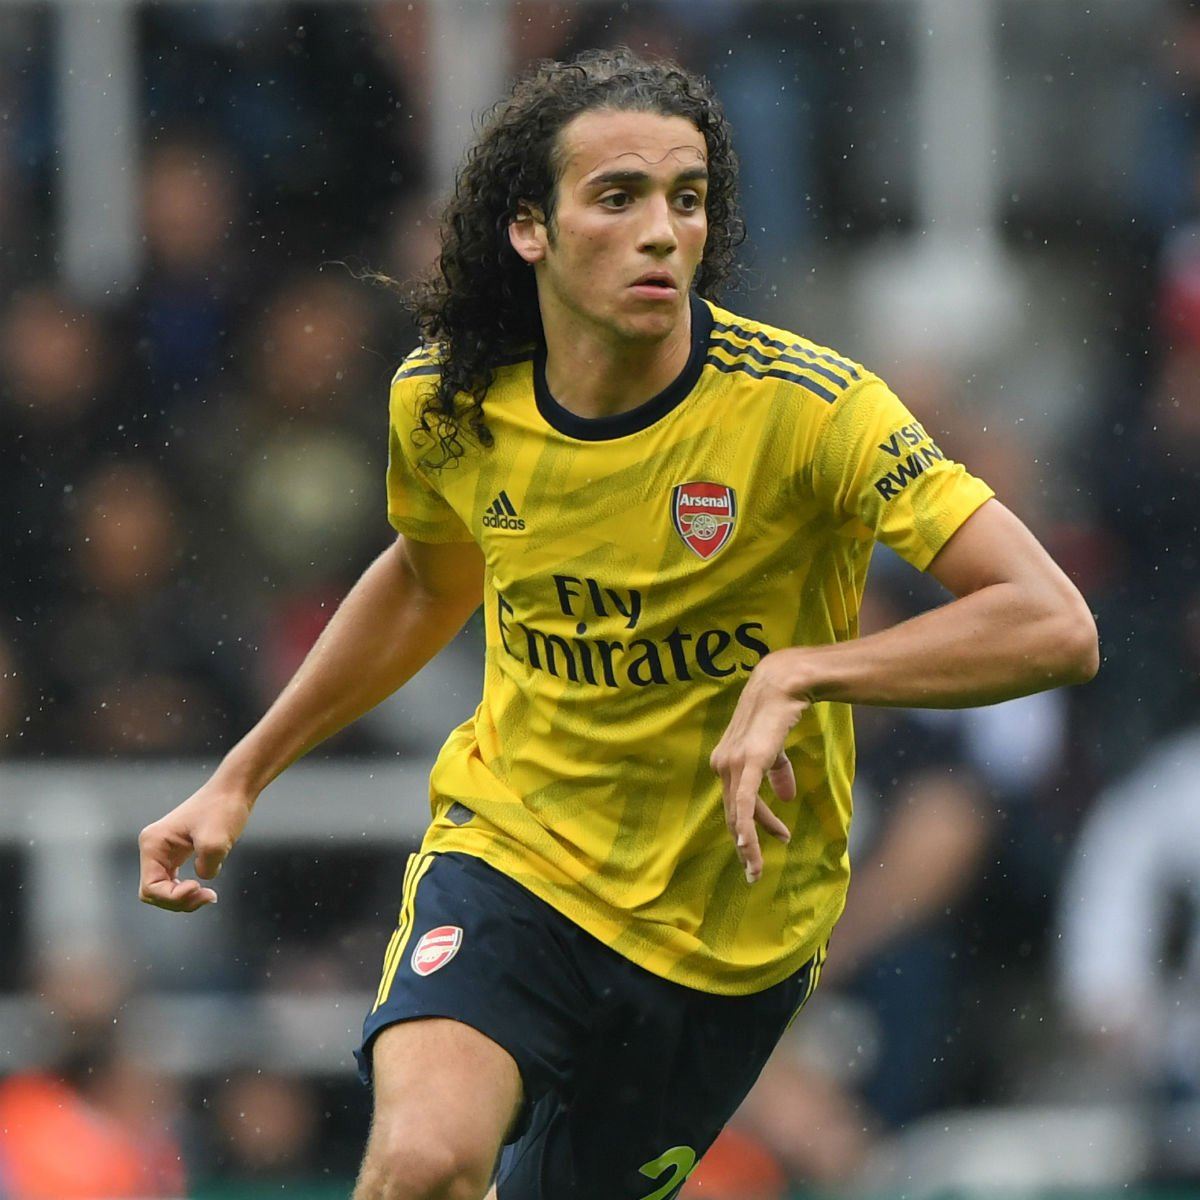 Arsenal are hopeful that Matteo Guendouzi pens a new five-year deal at the club, according to the Daily Mail  <br>http://pic.twitter.com/iE3wWG67KA